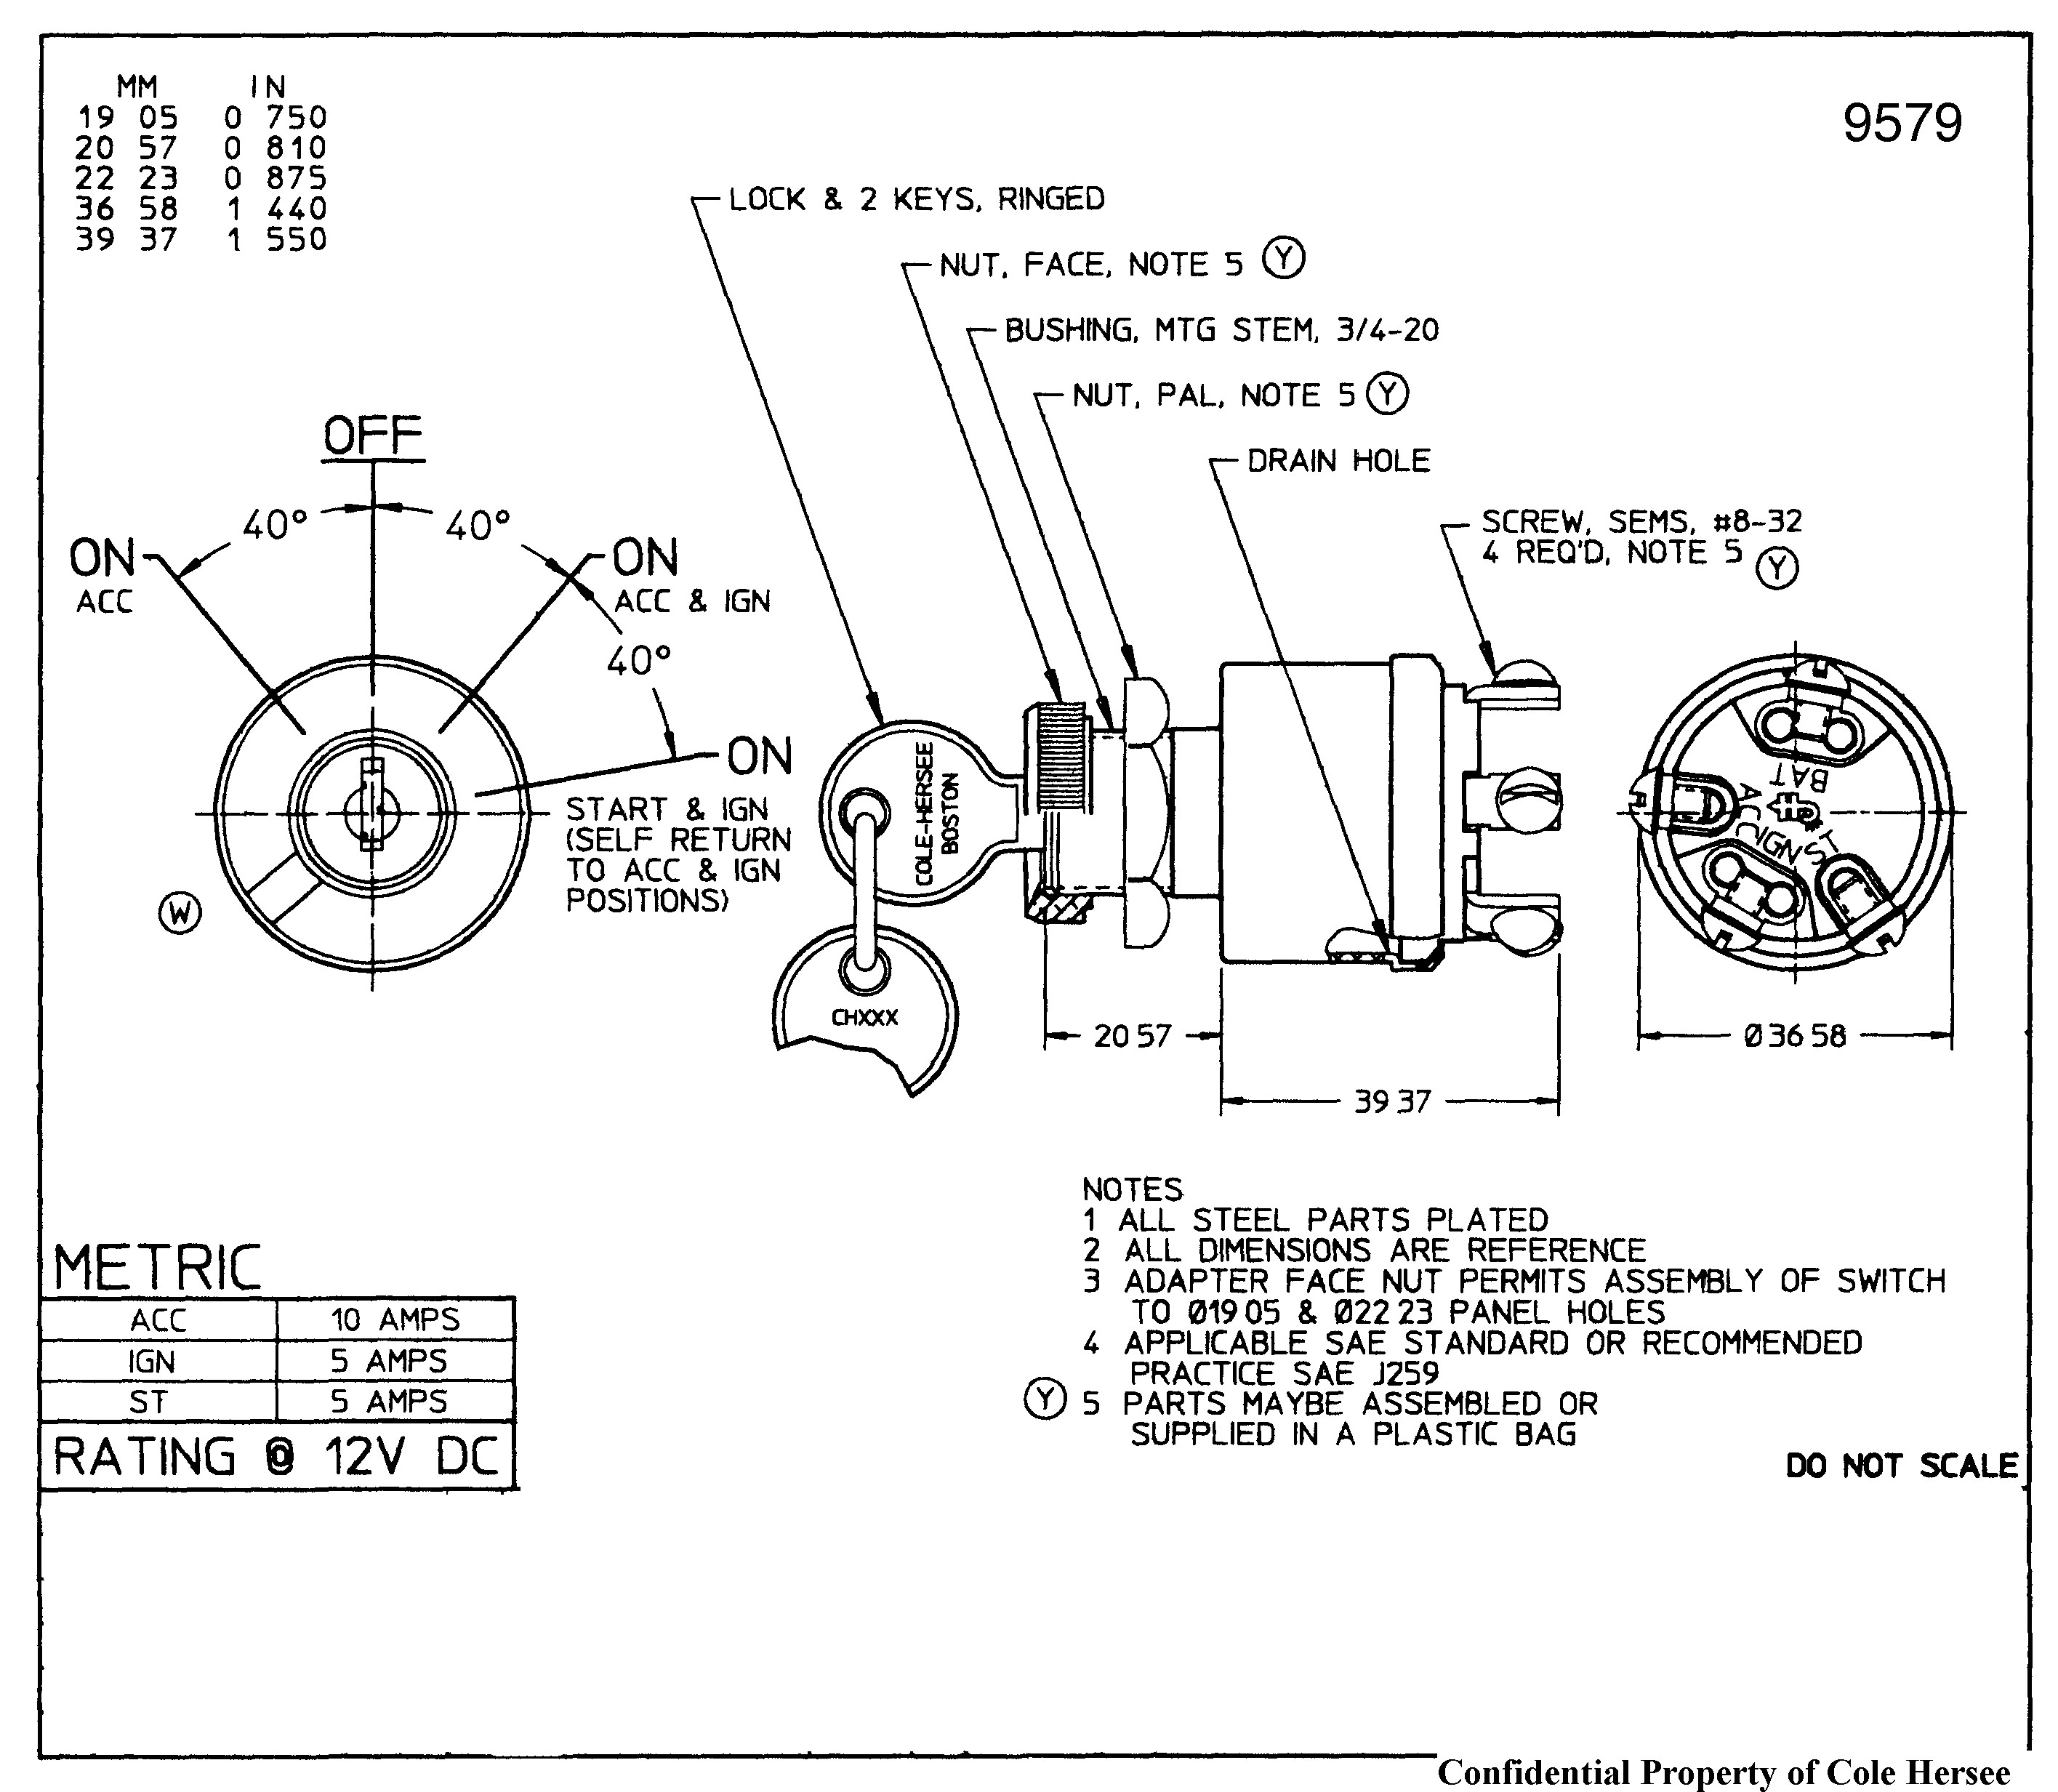 Inboard Boat Ignition Switch Wiring Diagram from static-resources.imageservice.cloud